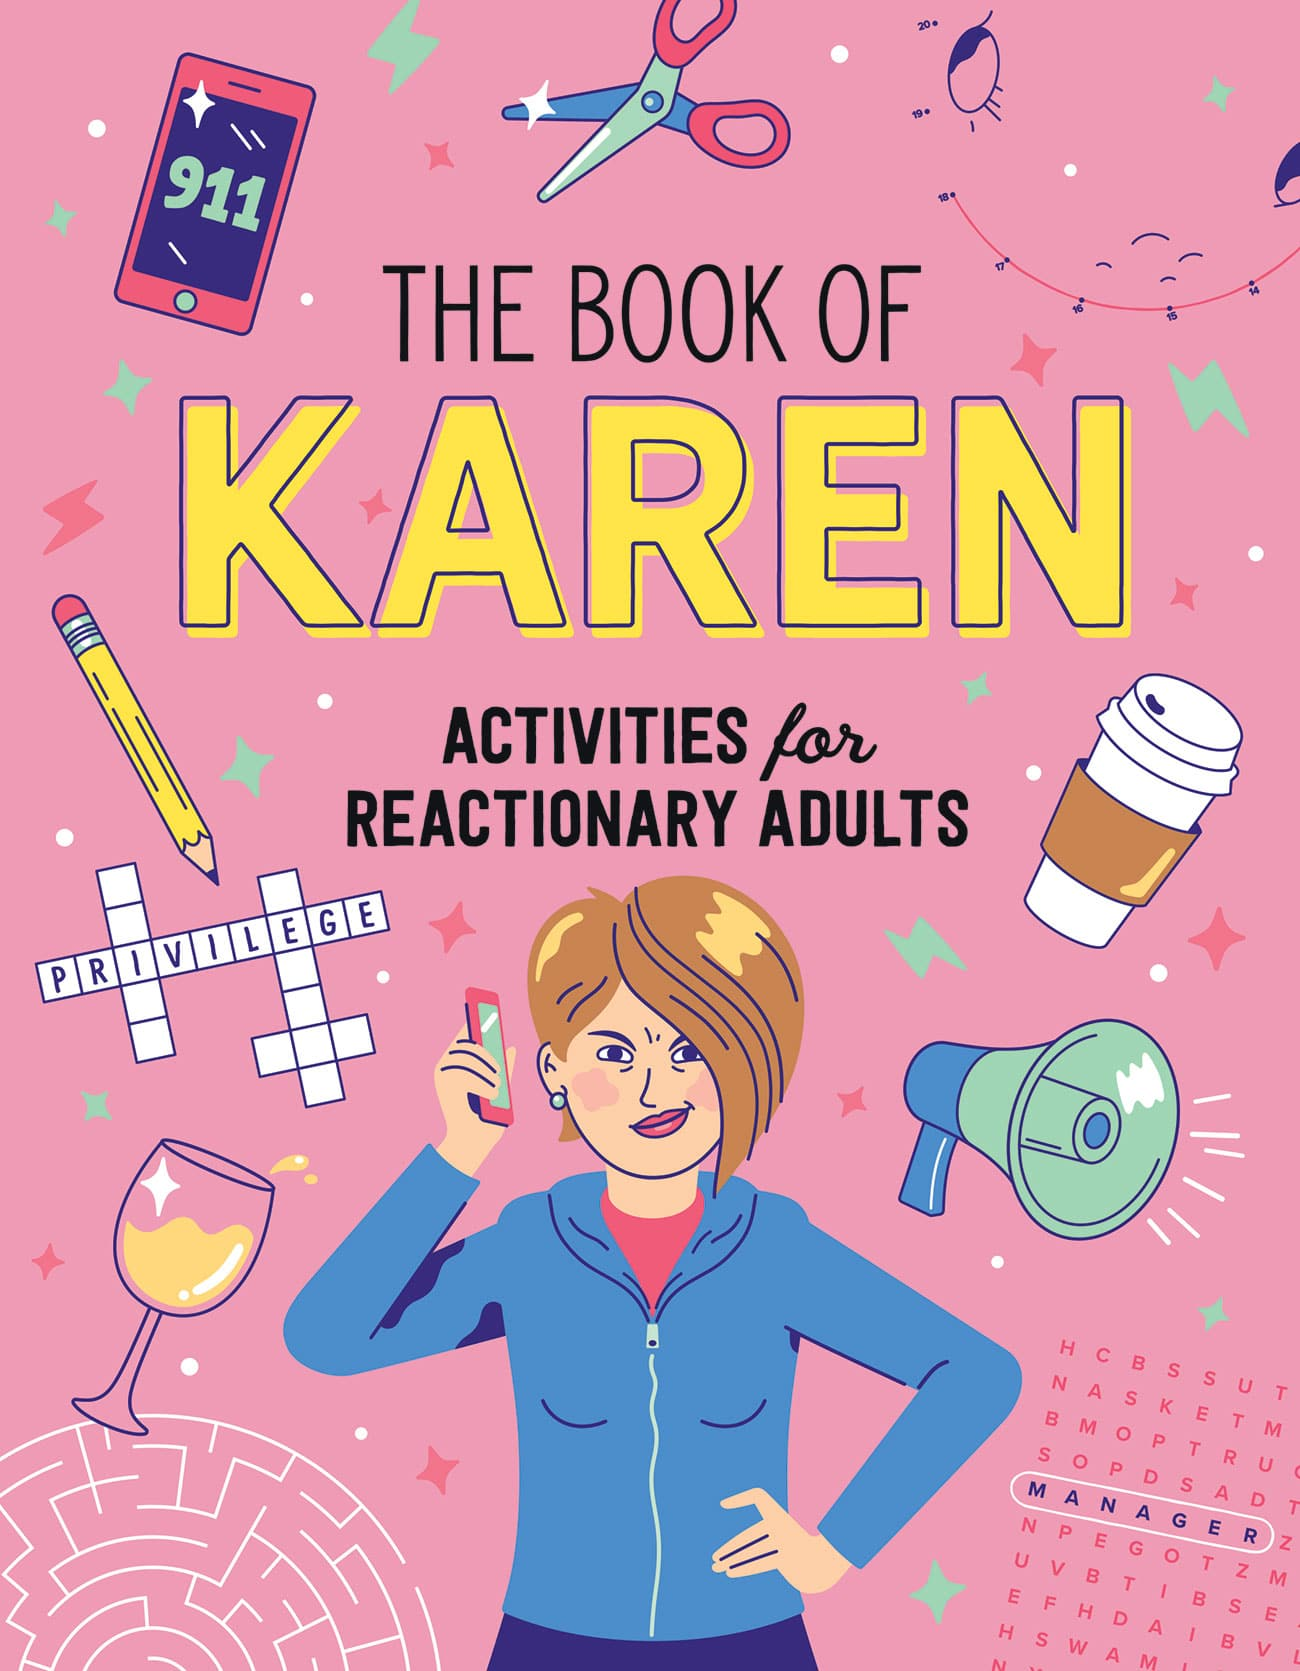 Cover art for The Book of Karen: Activities for Reactionary Adults